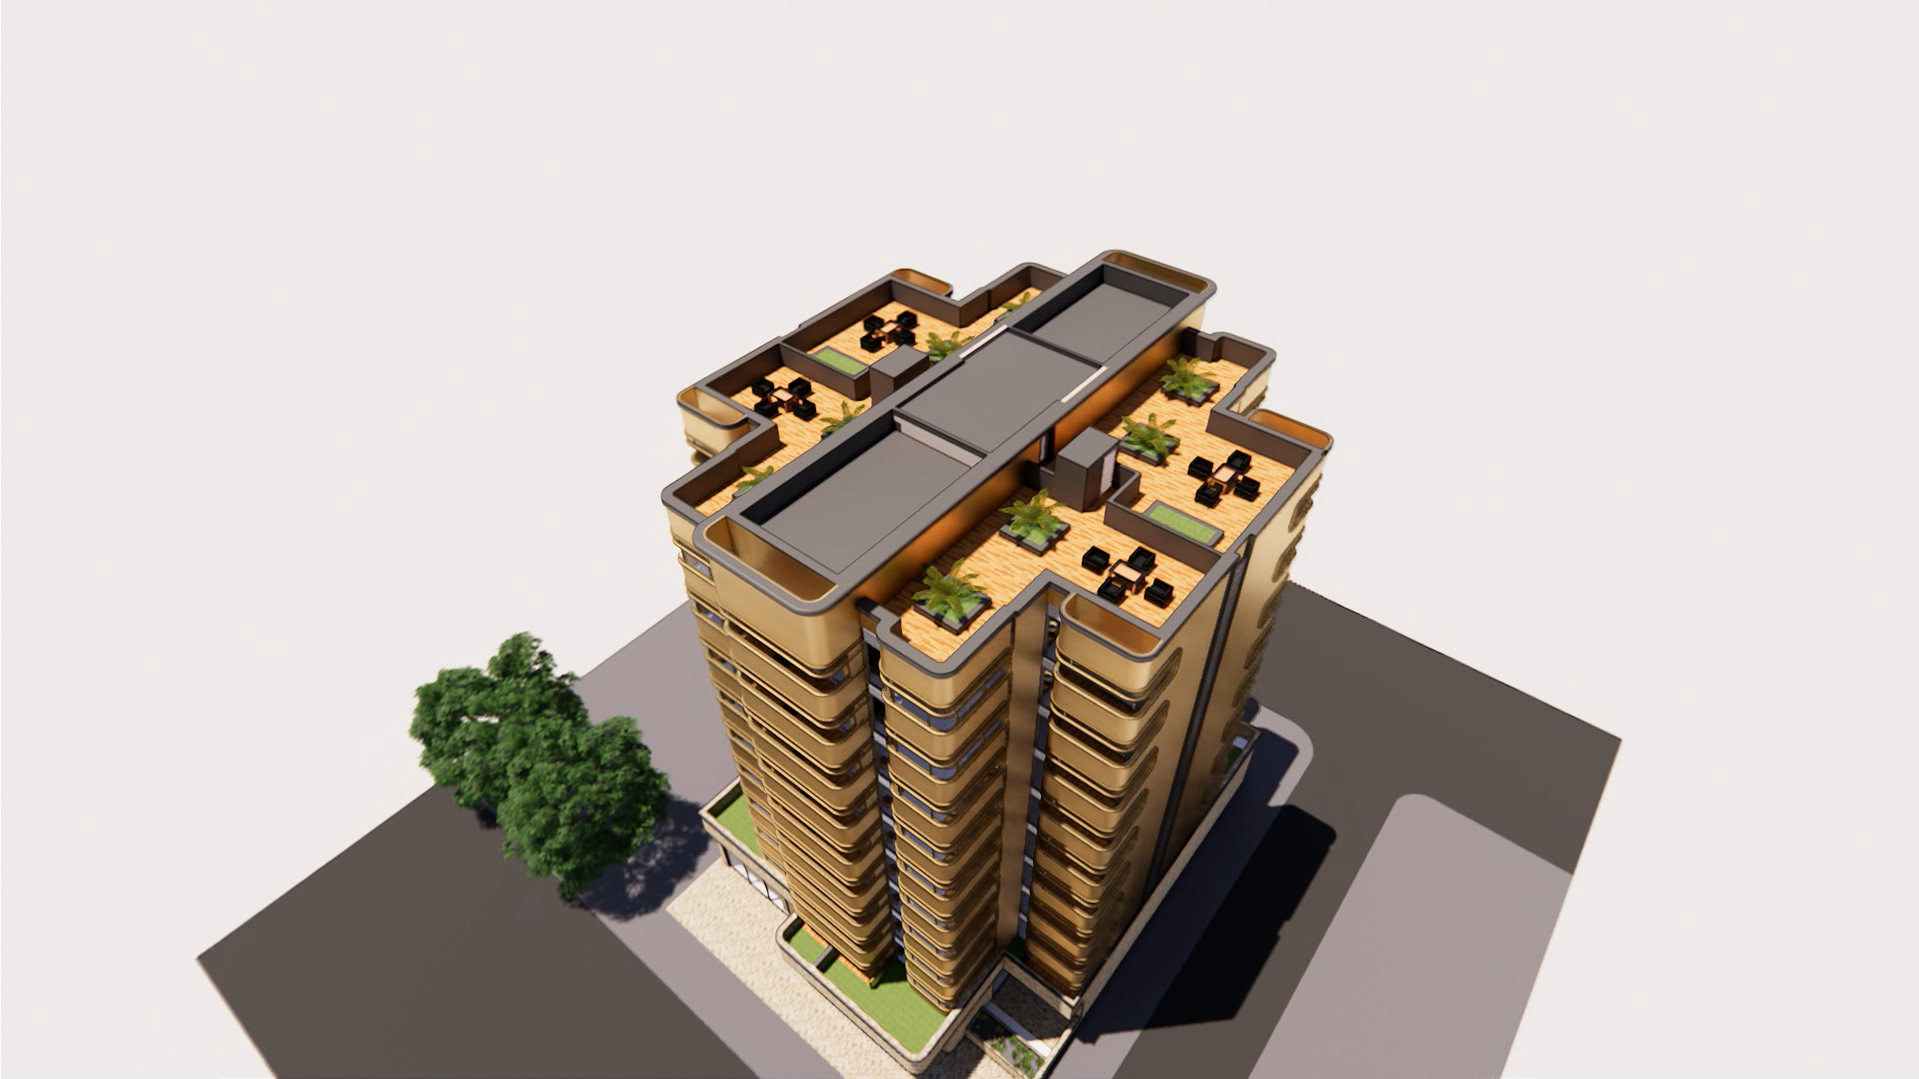 Rendering of a modern building from above